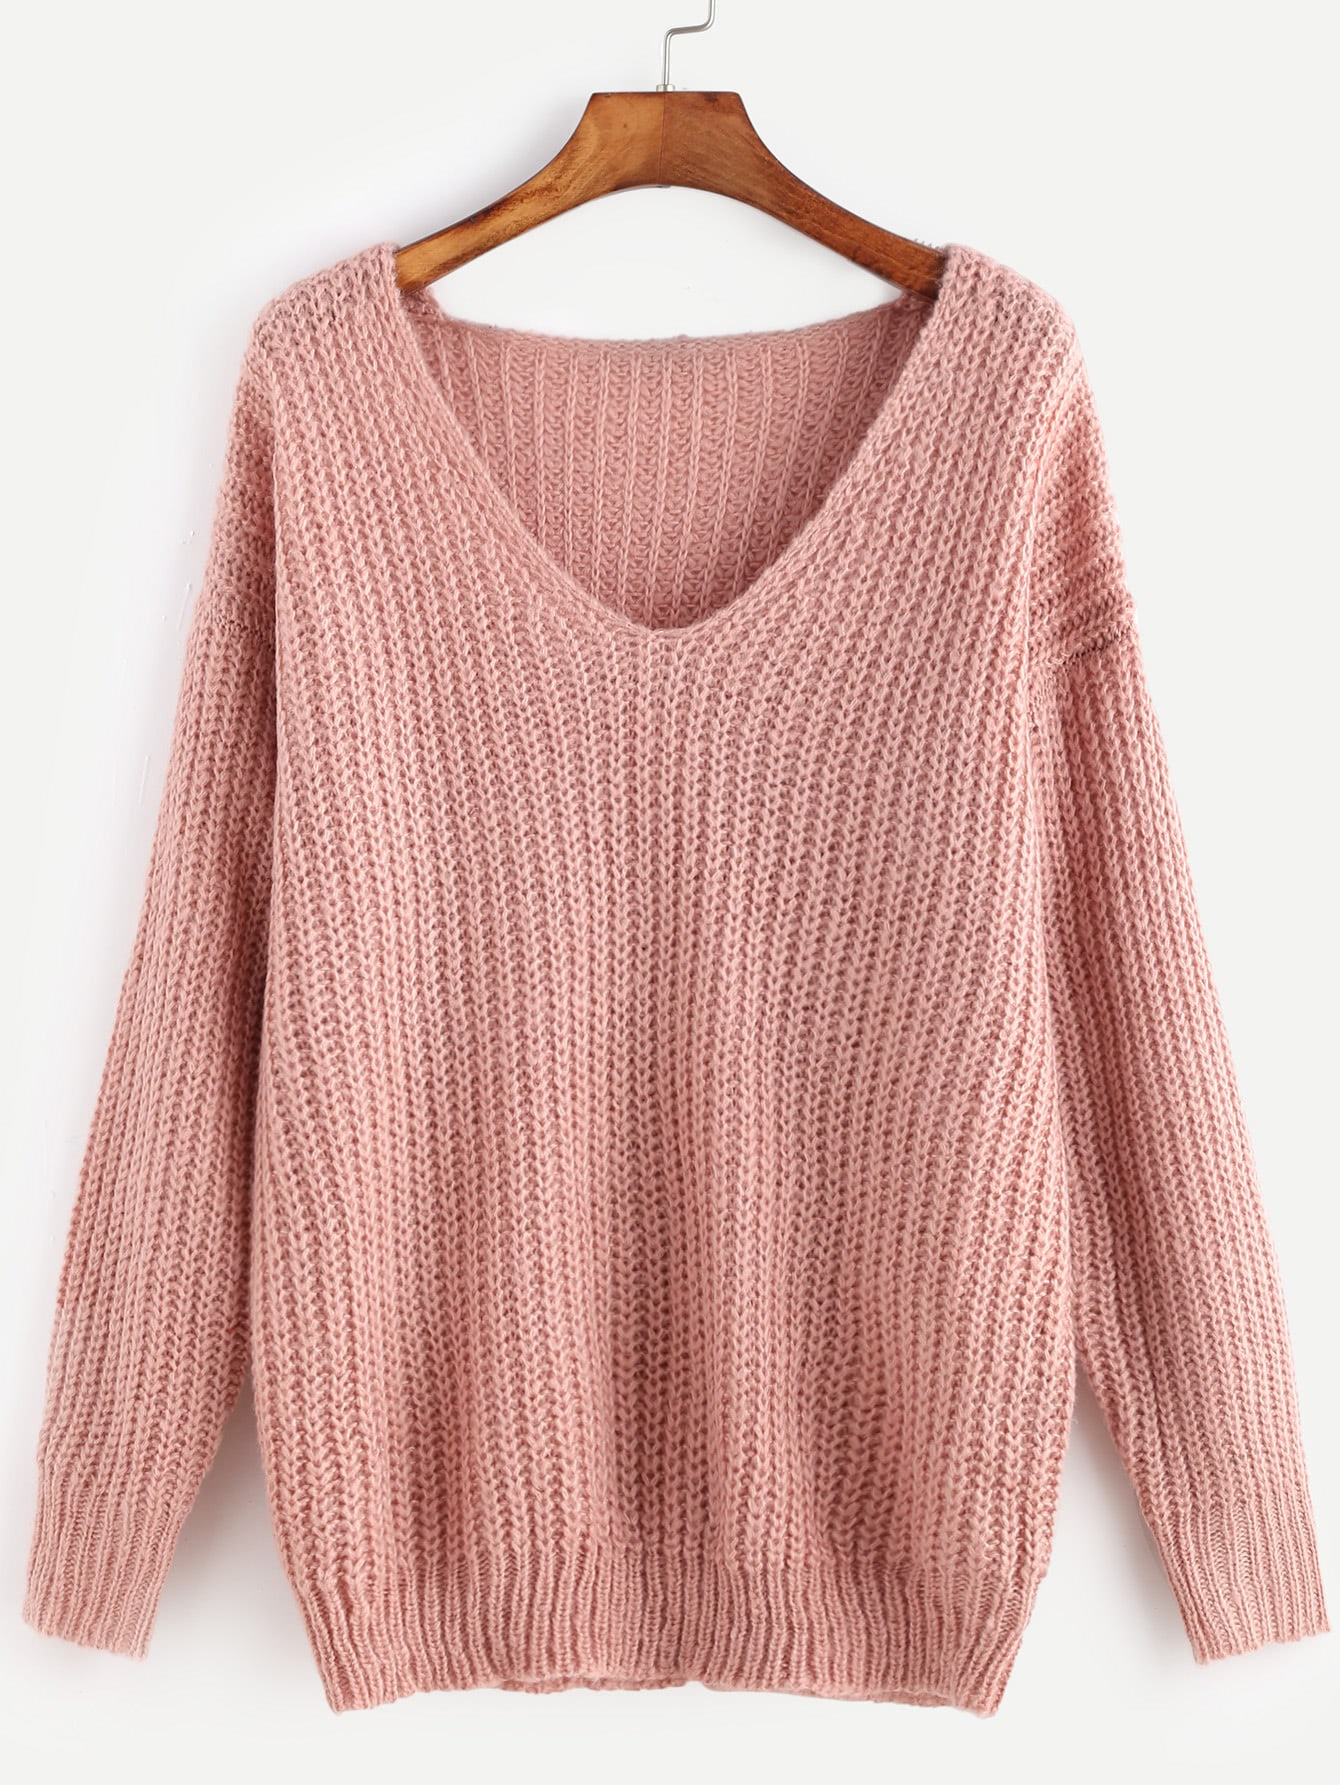 Pink Ribbed Knit V Neck Drop Shoulder Sweater sweater161104402